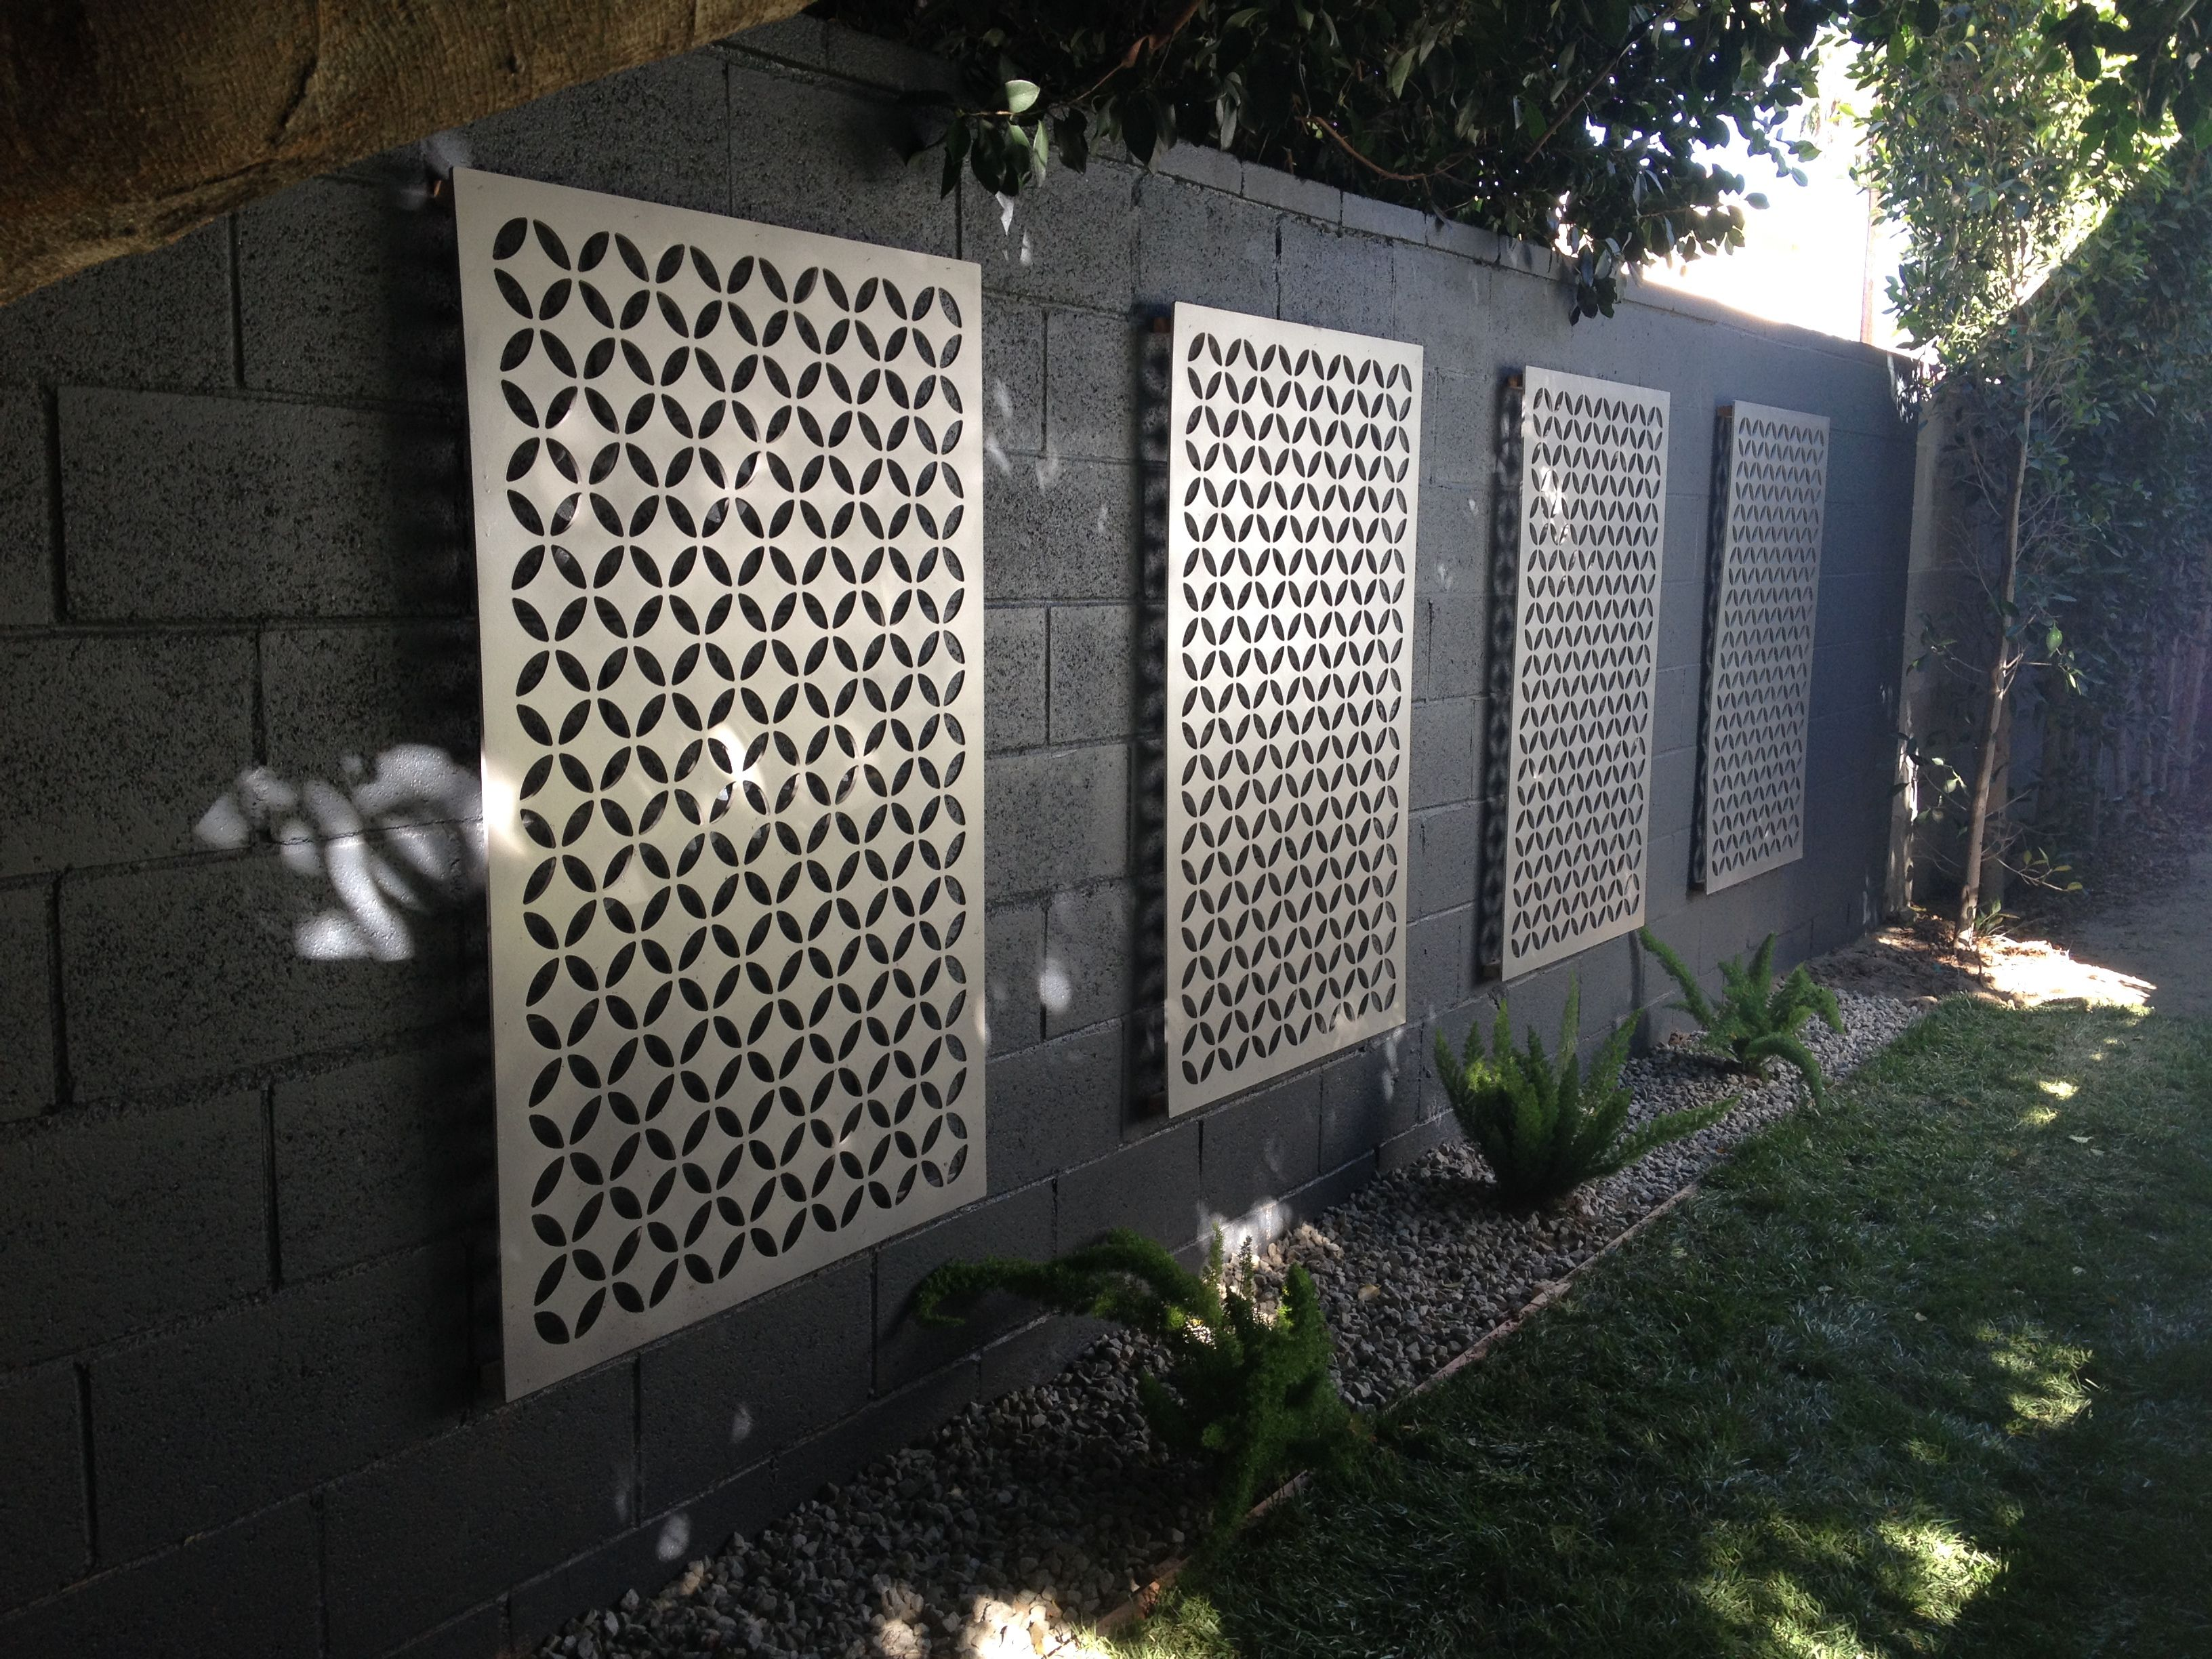 Easy Way To Dress Up A Cmu Block Wall Use Metal Or Composite Decorative Sheets 35 B Cinder Block Walls Cinder Block Garden Wall Decorative Concrete Blocks